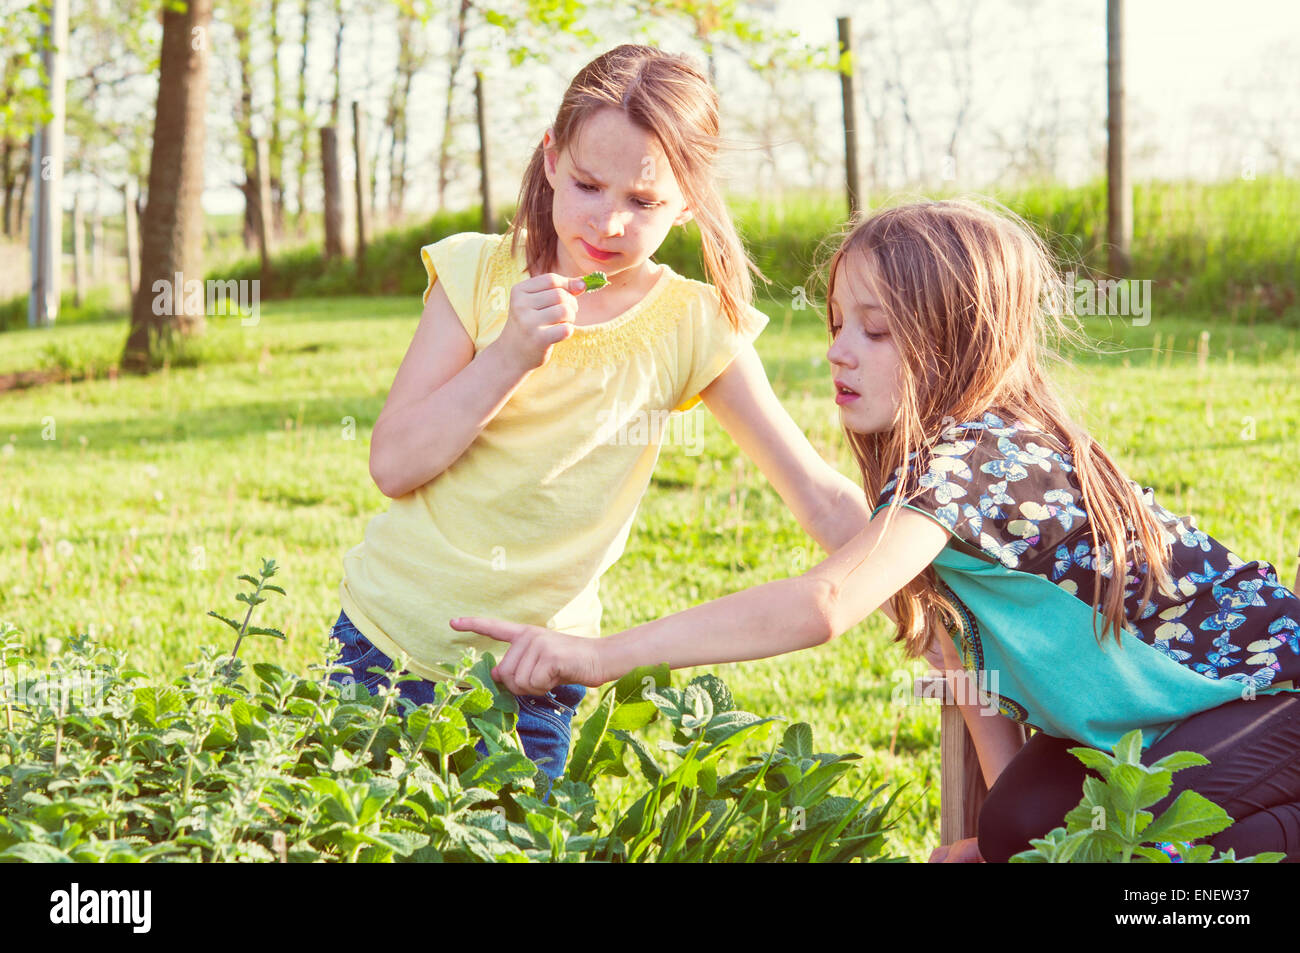 girls in herb garden - Stock Image